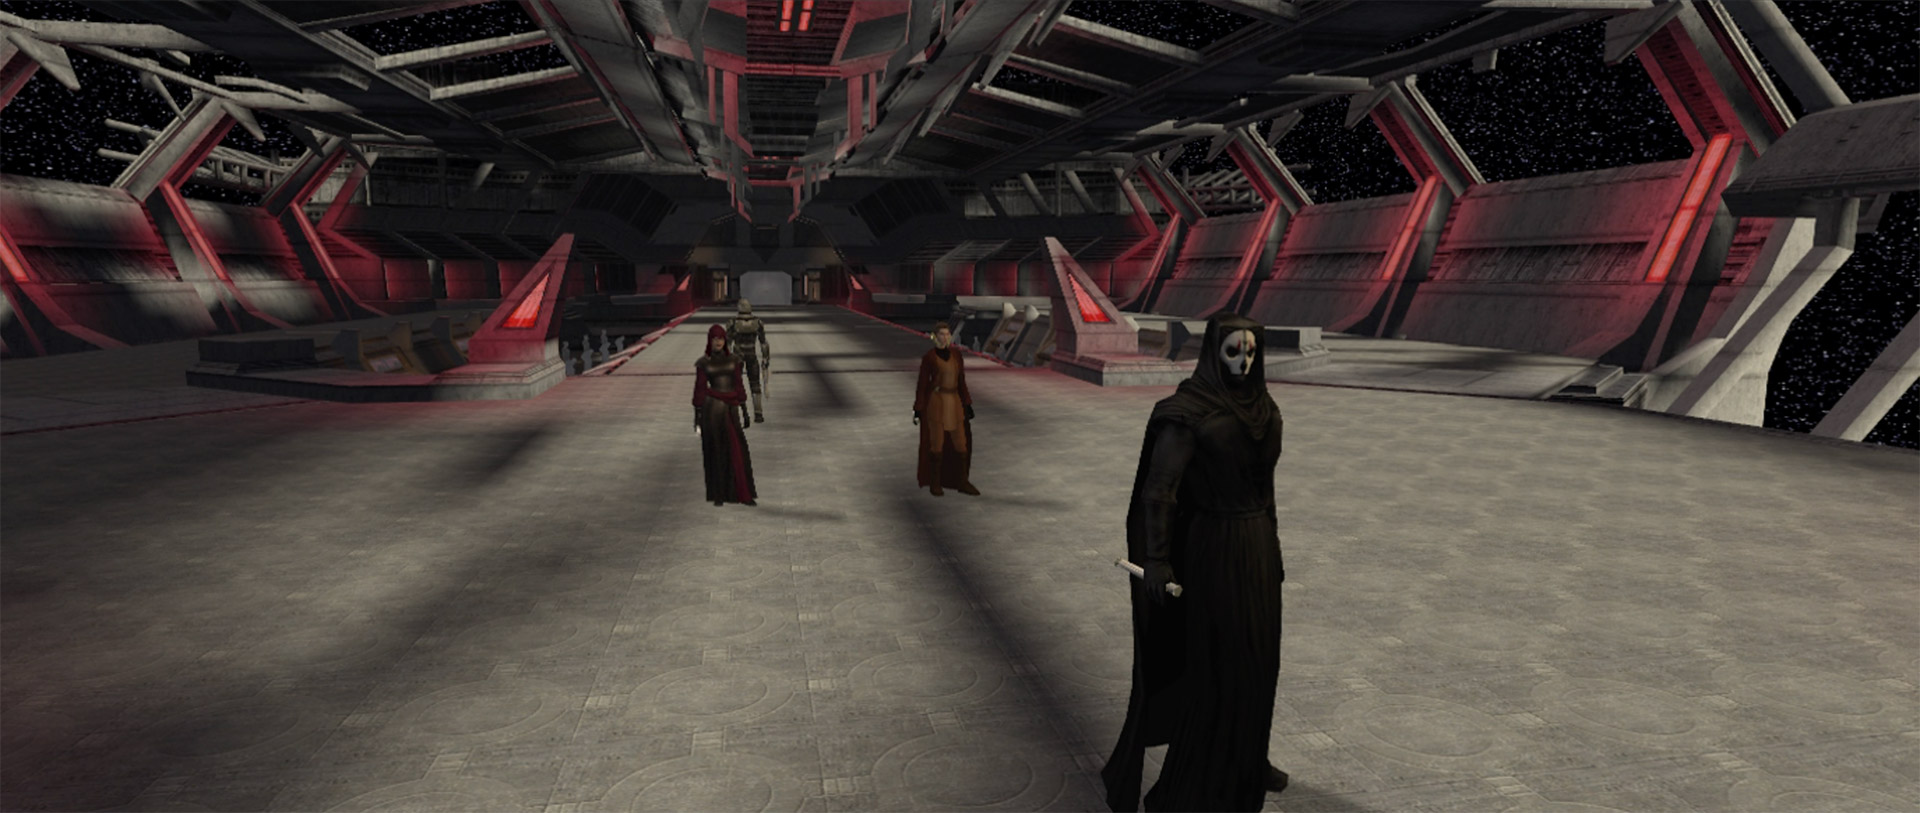 Robed figures stand on a dimly-lit spaceship command deck in Star Wars Knights of the Old Republic II: The Sith Lords.